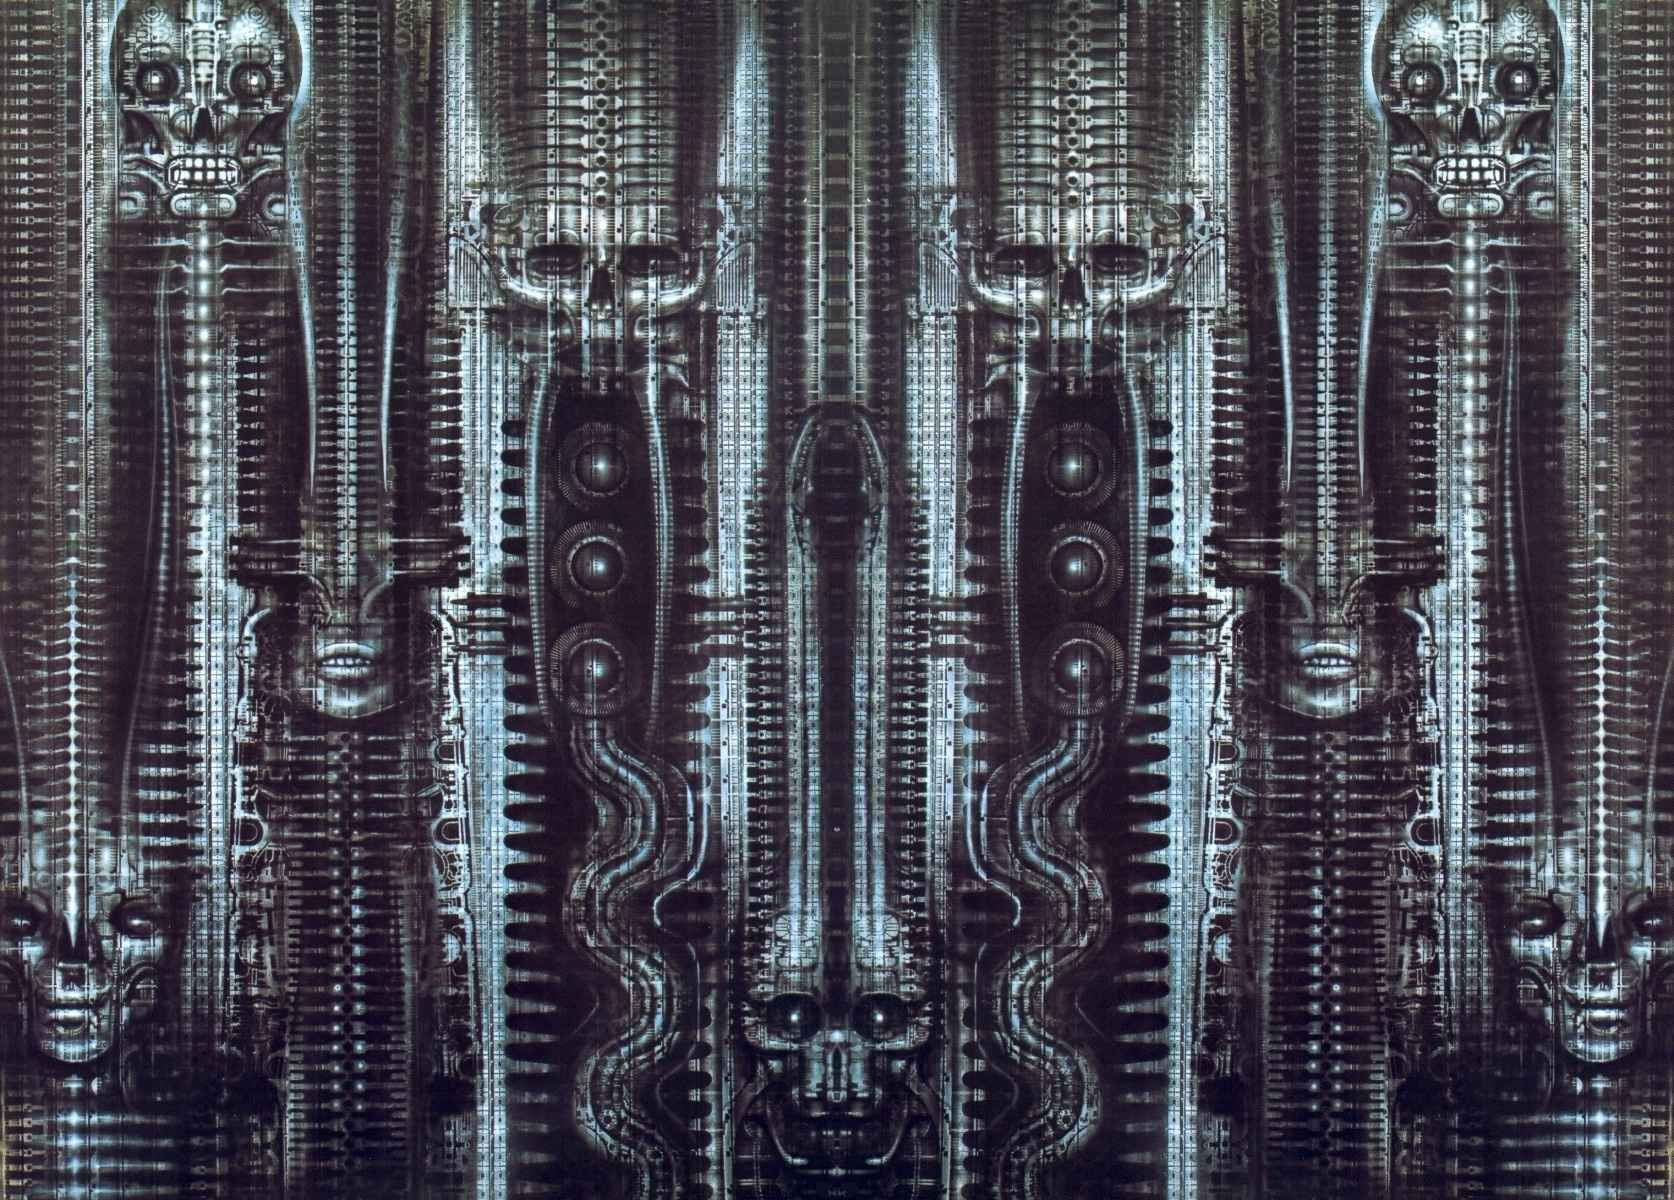 Hr giger tattoo designs - Find This Pin And More On Hr Giger